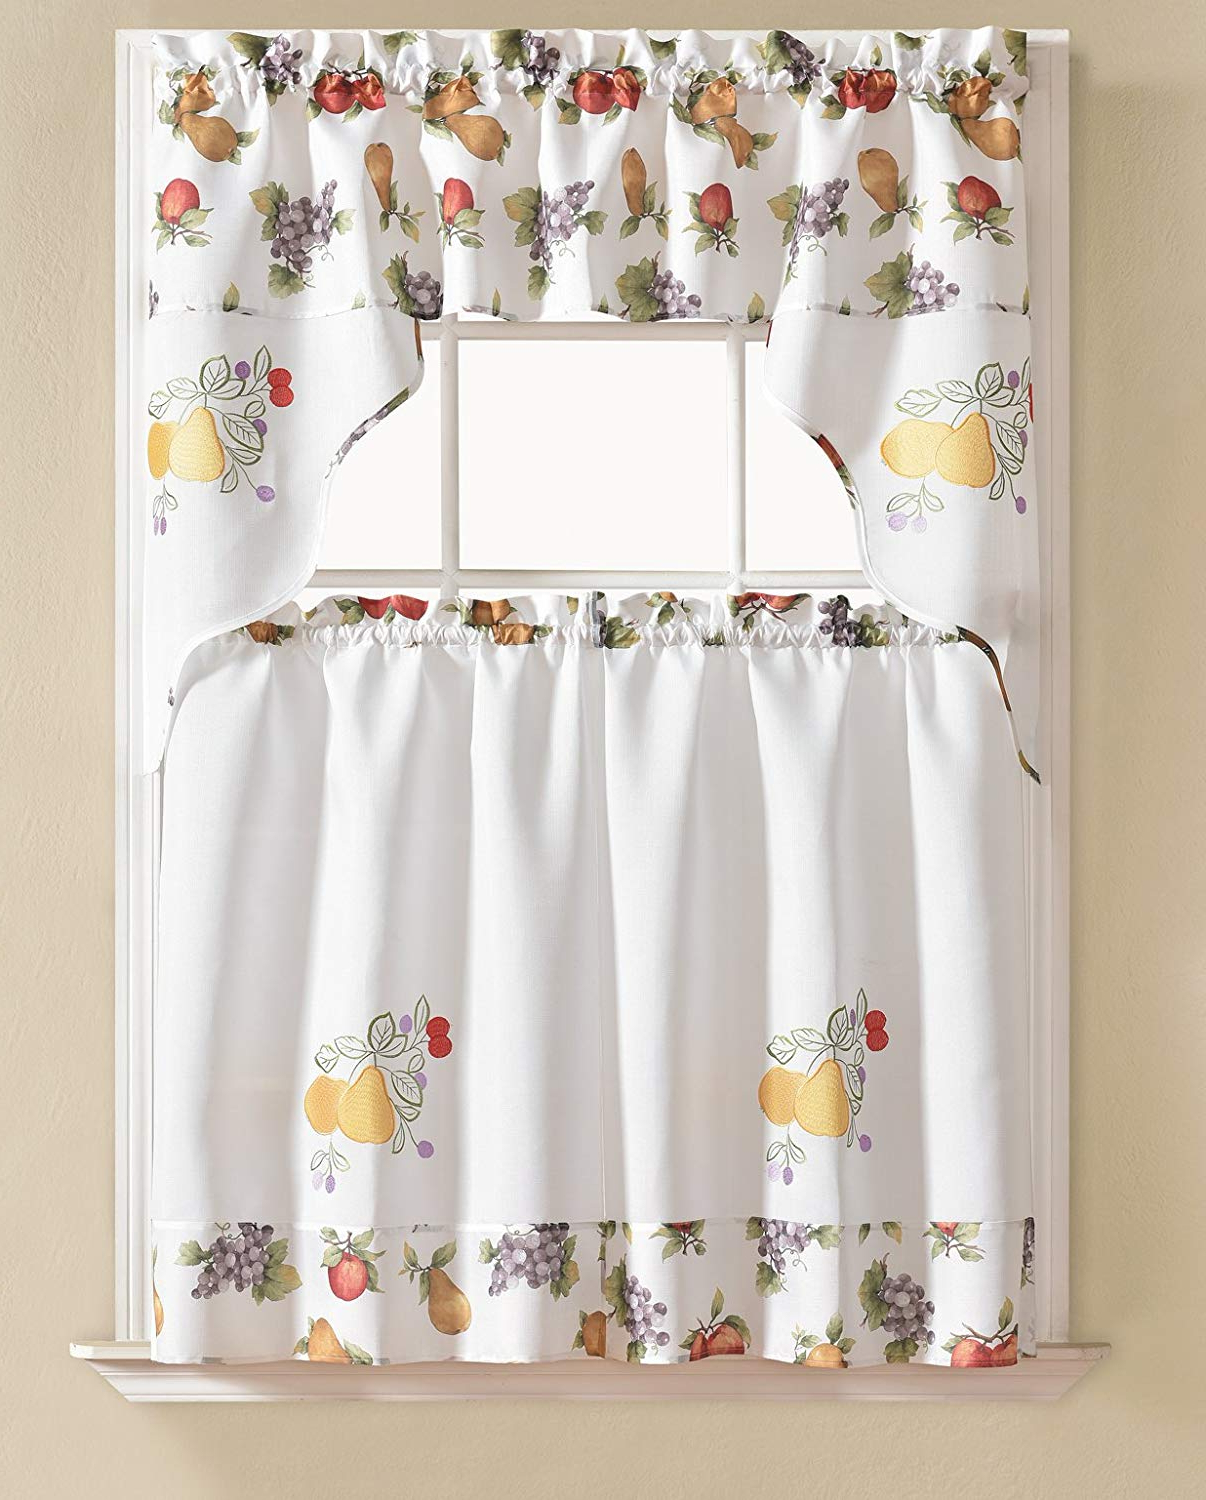 Most Up To Date Urban Embroidered Tier And Valance Kitchen Curtain Tier Sets Regarding Rt Designers Collection Urban Embroidered Tier And Valance Kitchen Curtain Set, Vegetable, (View 2 of 20)